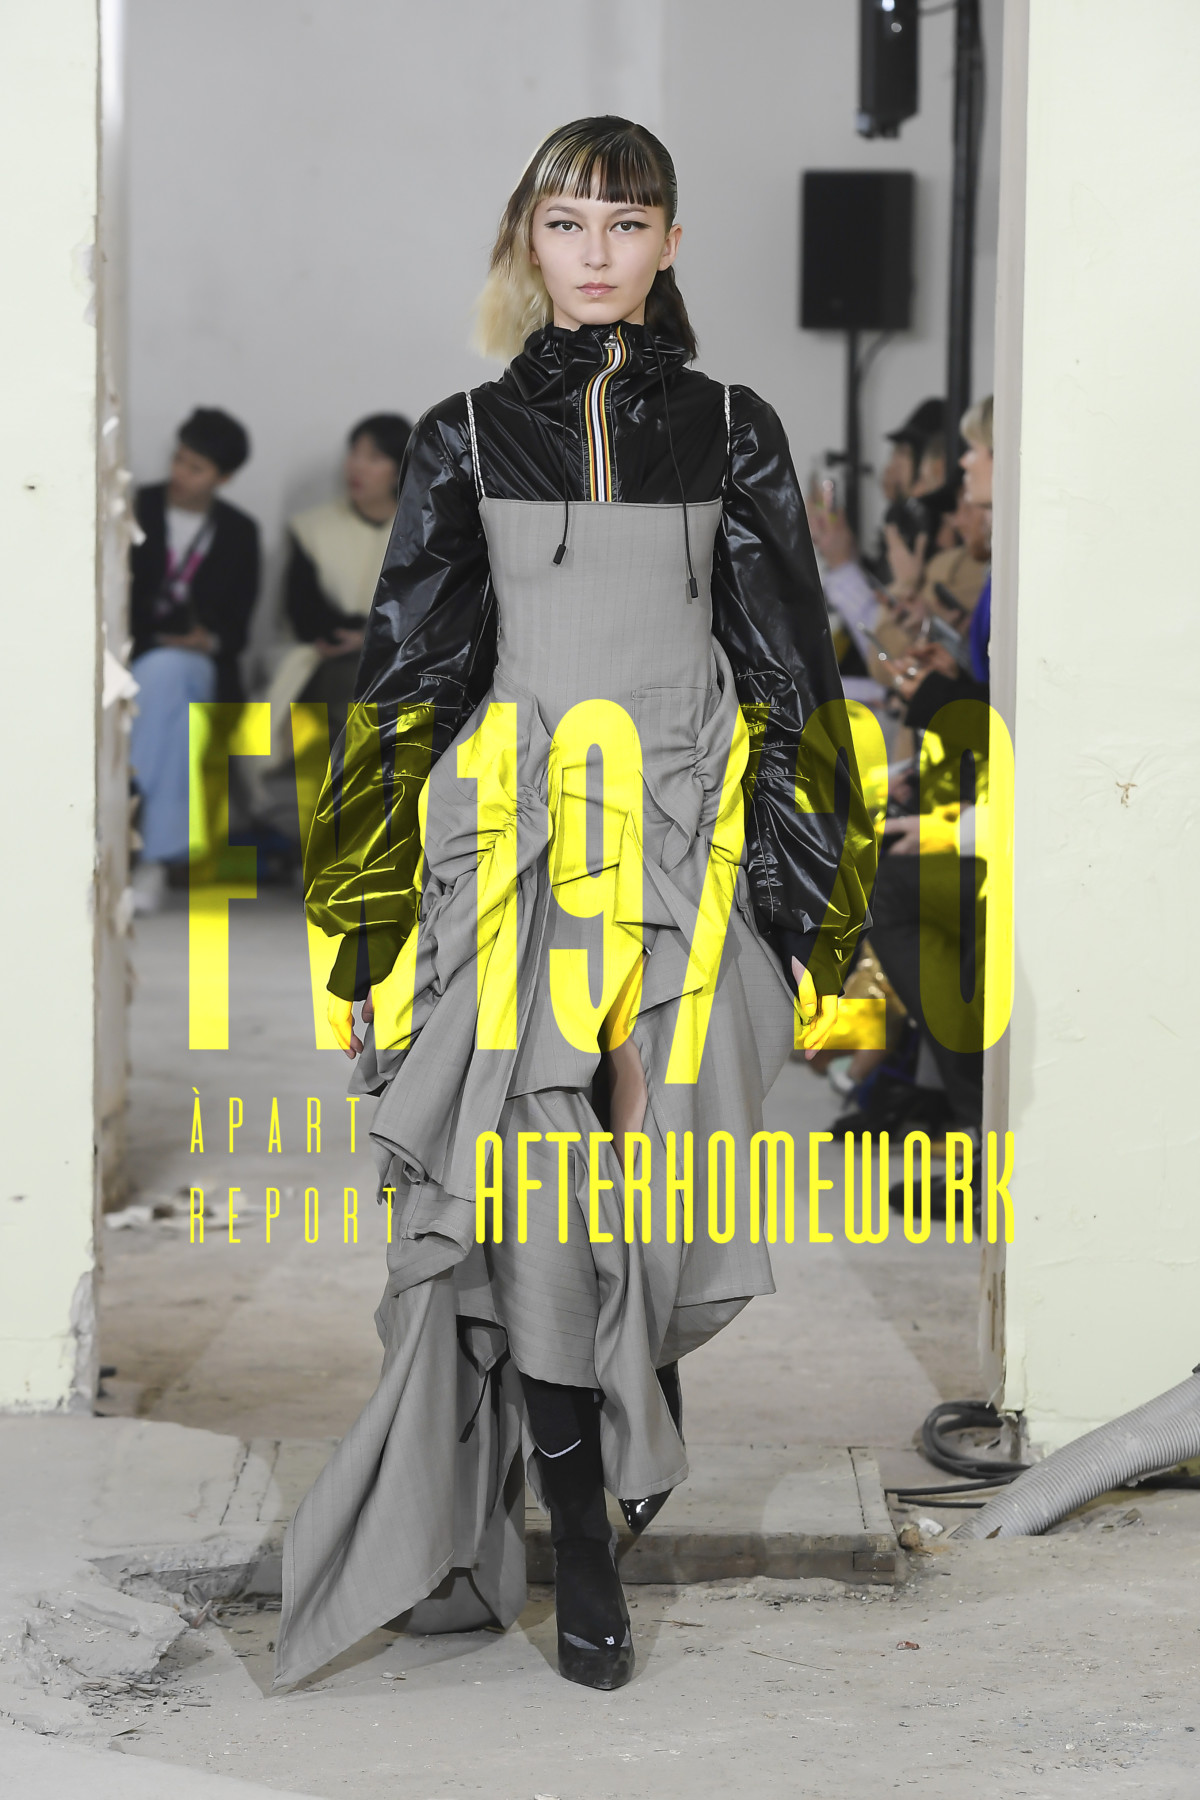 FASHION WEEK DOCUMENTARY : AFTERHOMEWORK